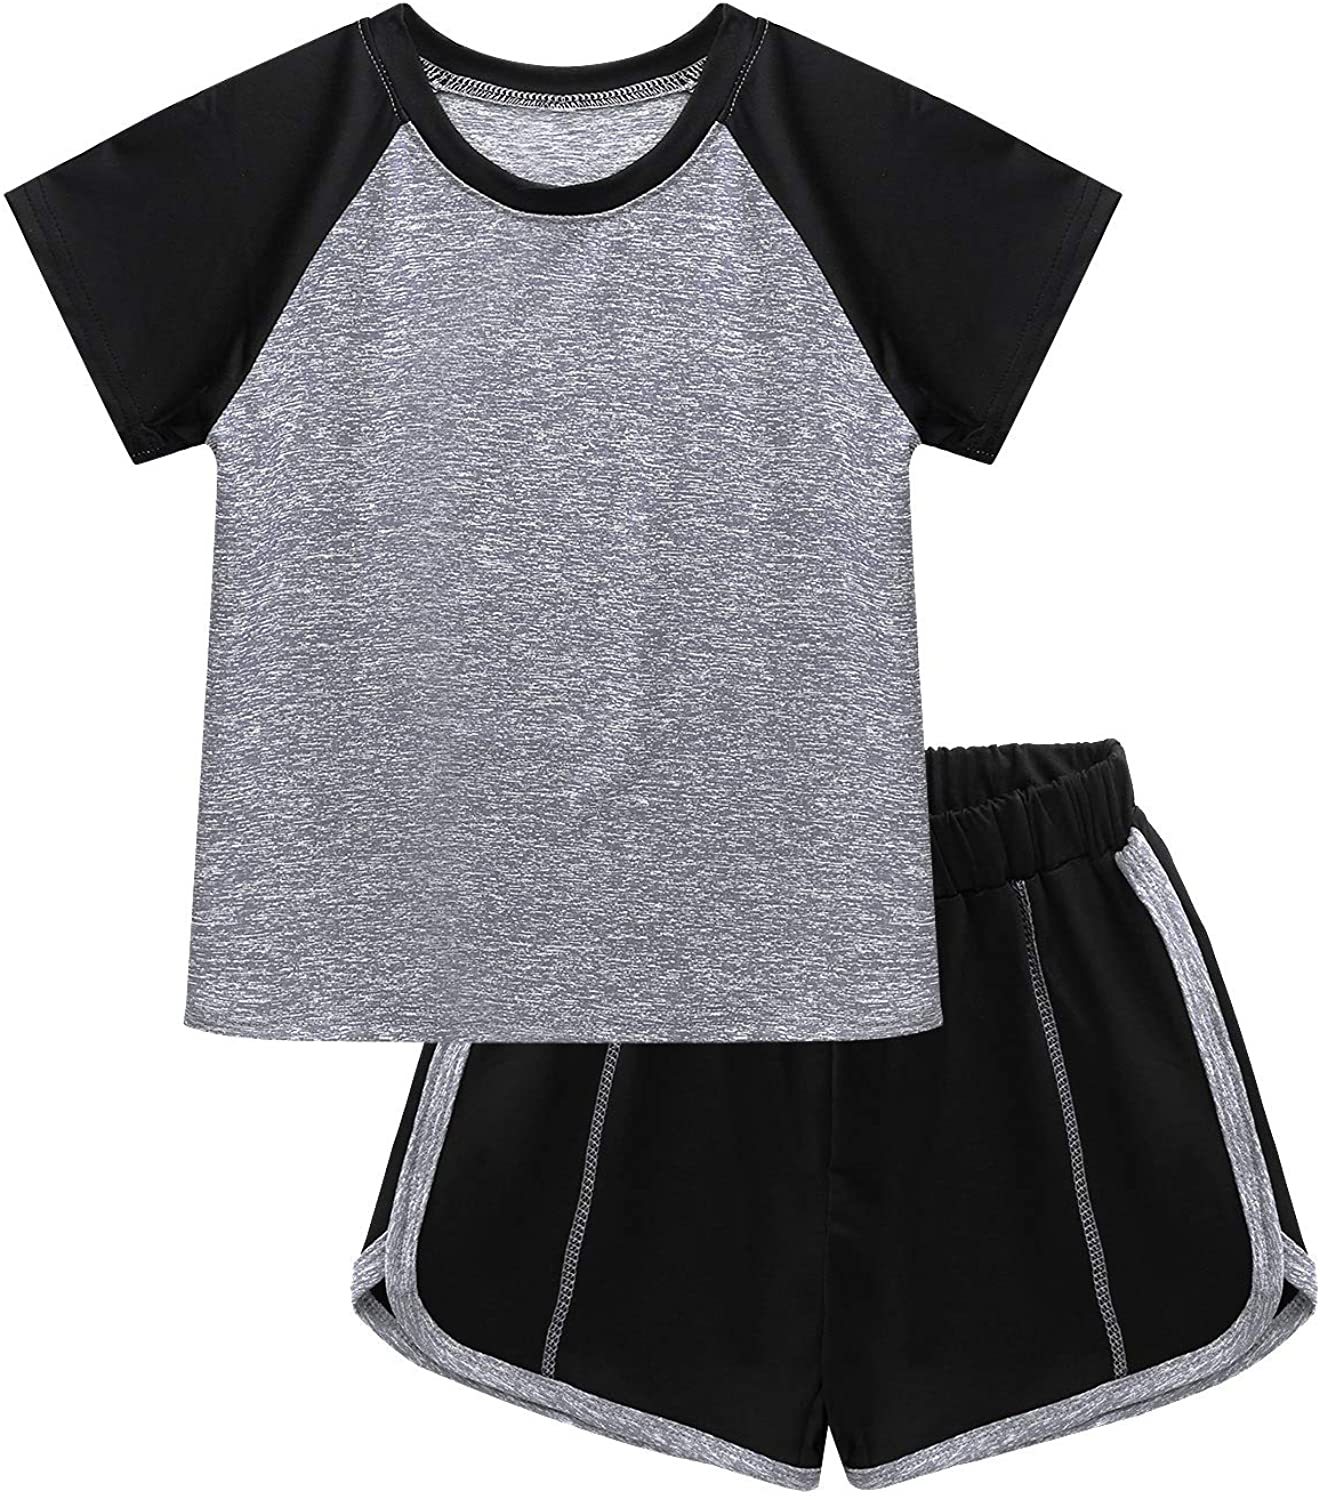 Freebily Kids Boys Girls Athletic Fitness Outfits Short Sleeves Sports T-Shirt Top with Shorts Gym Tracksuits Activewear